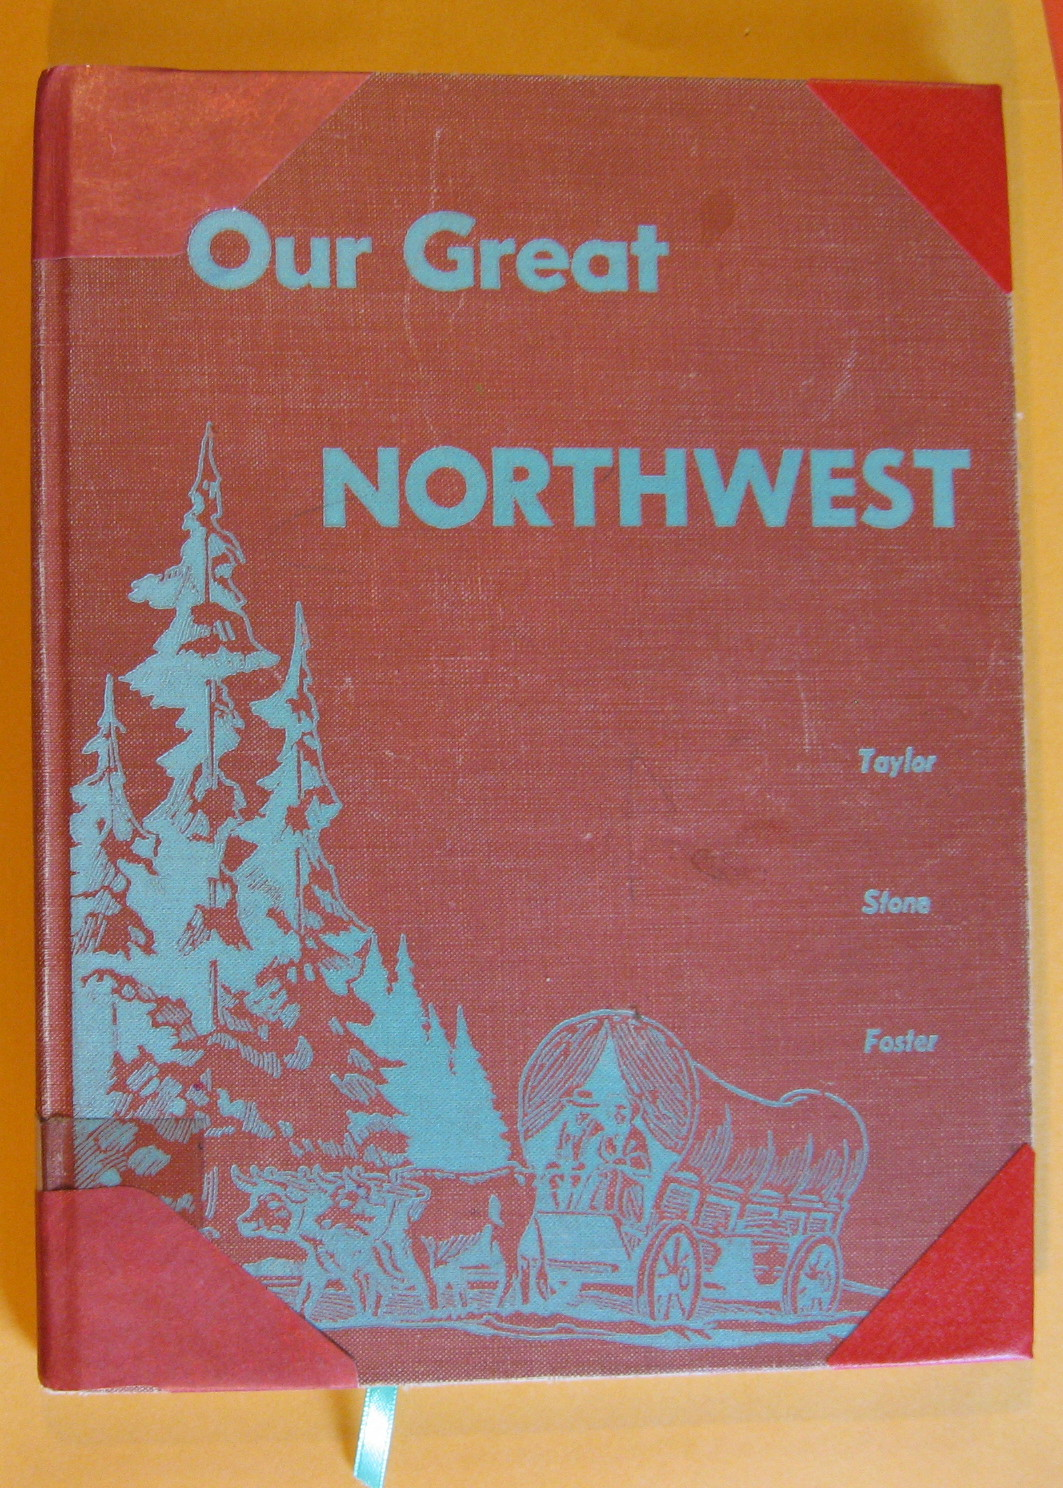 Blank Journal (Our Great Northwest)